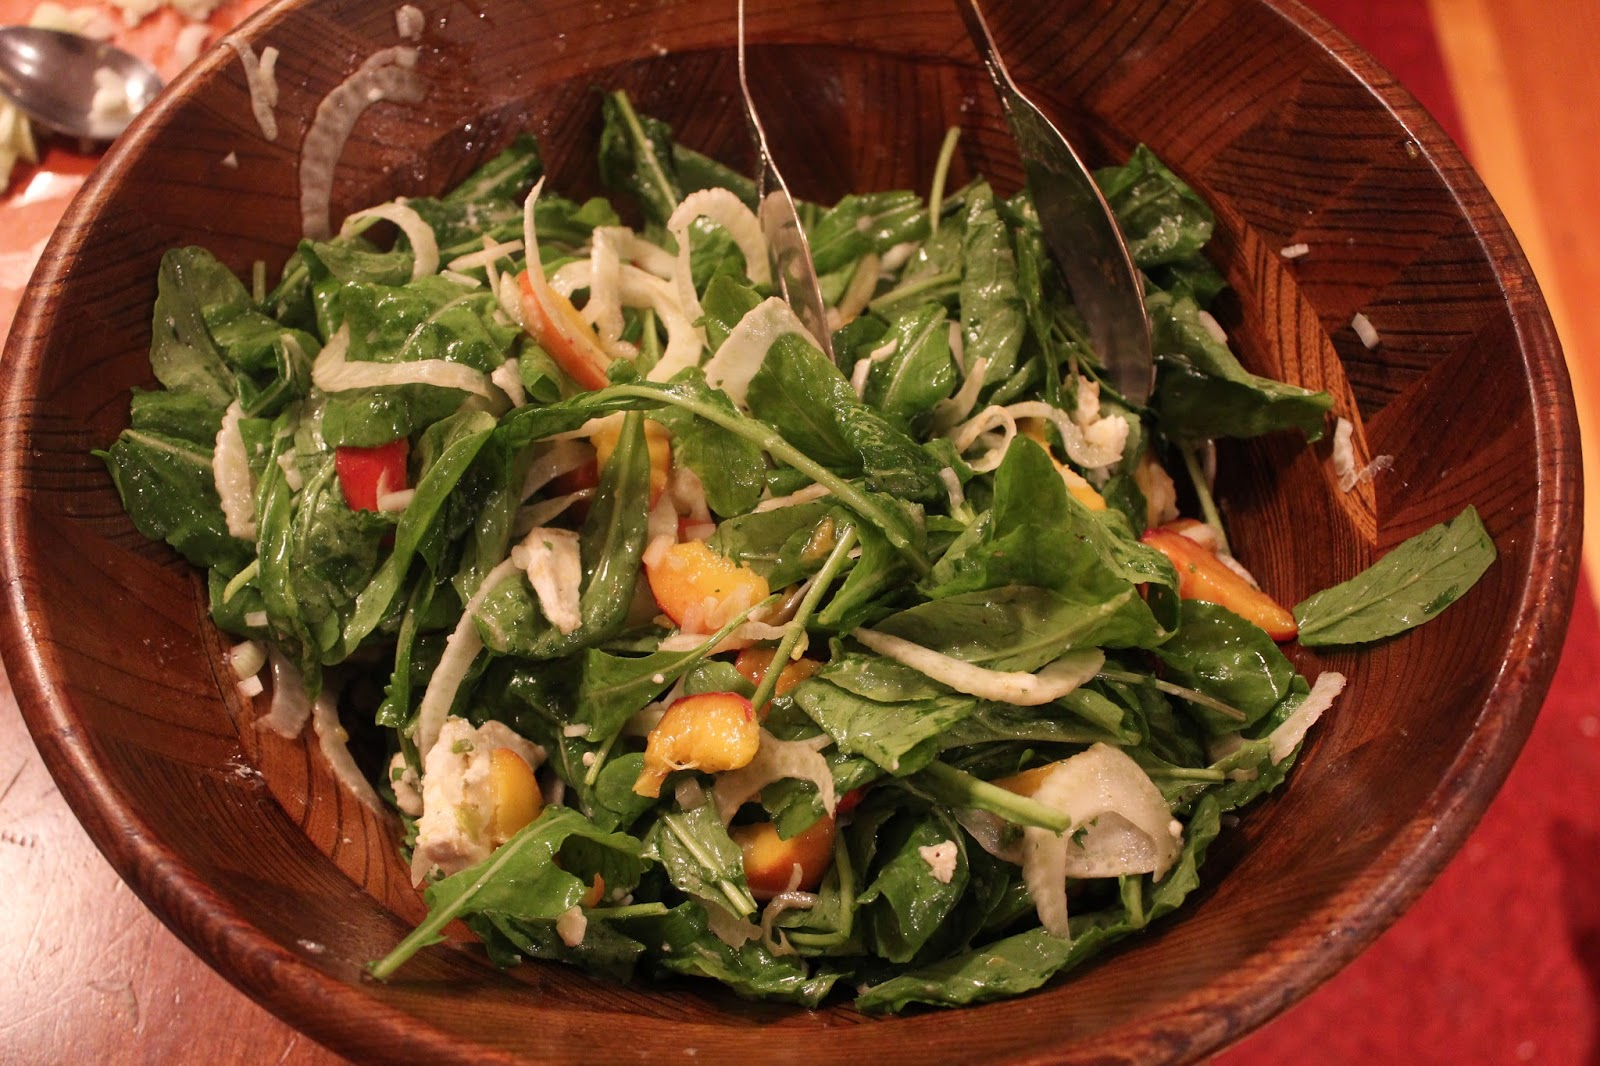 Runaway Apricot's Pickled Peach Salad with Fennel and Arugula